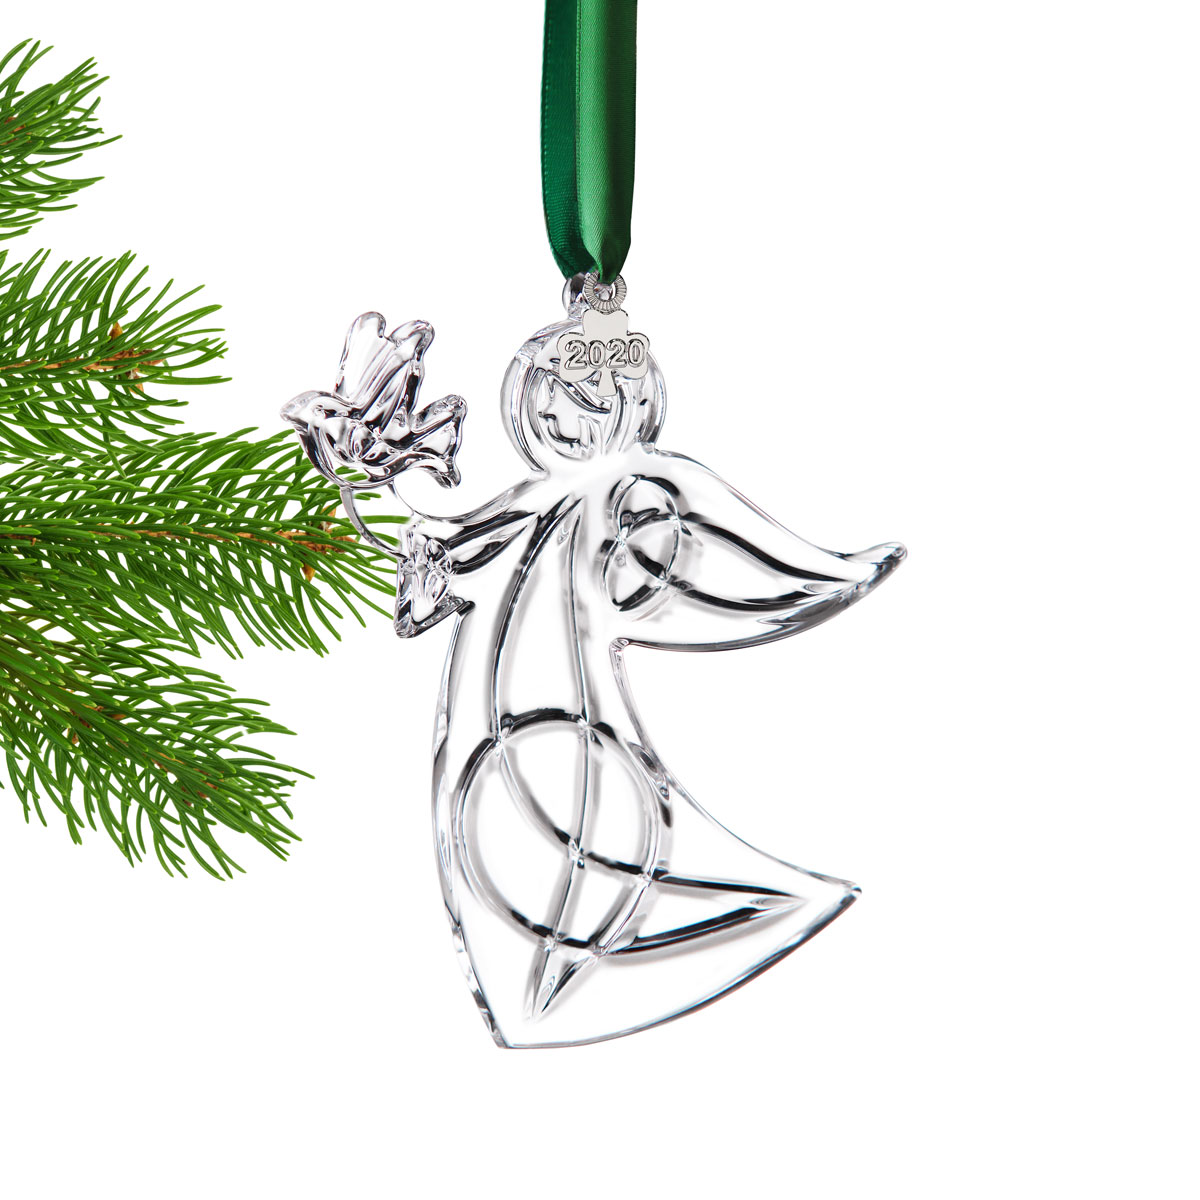 Cashs Ireland, 2020 Angel with Peace Dove Ornament, Annual Edition